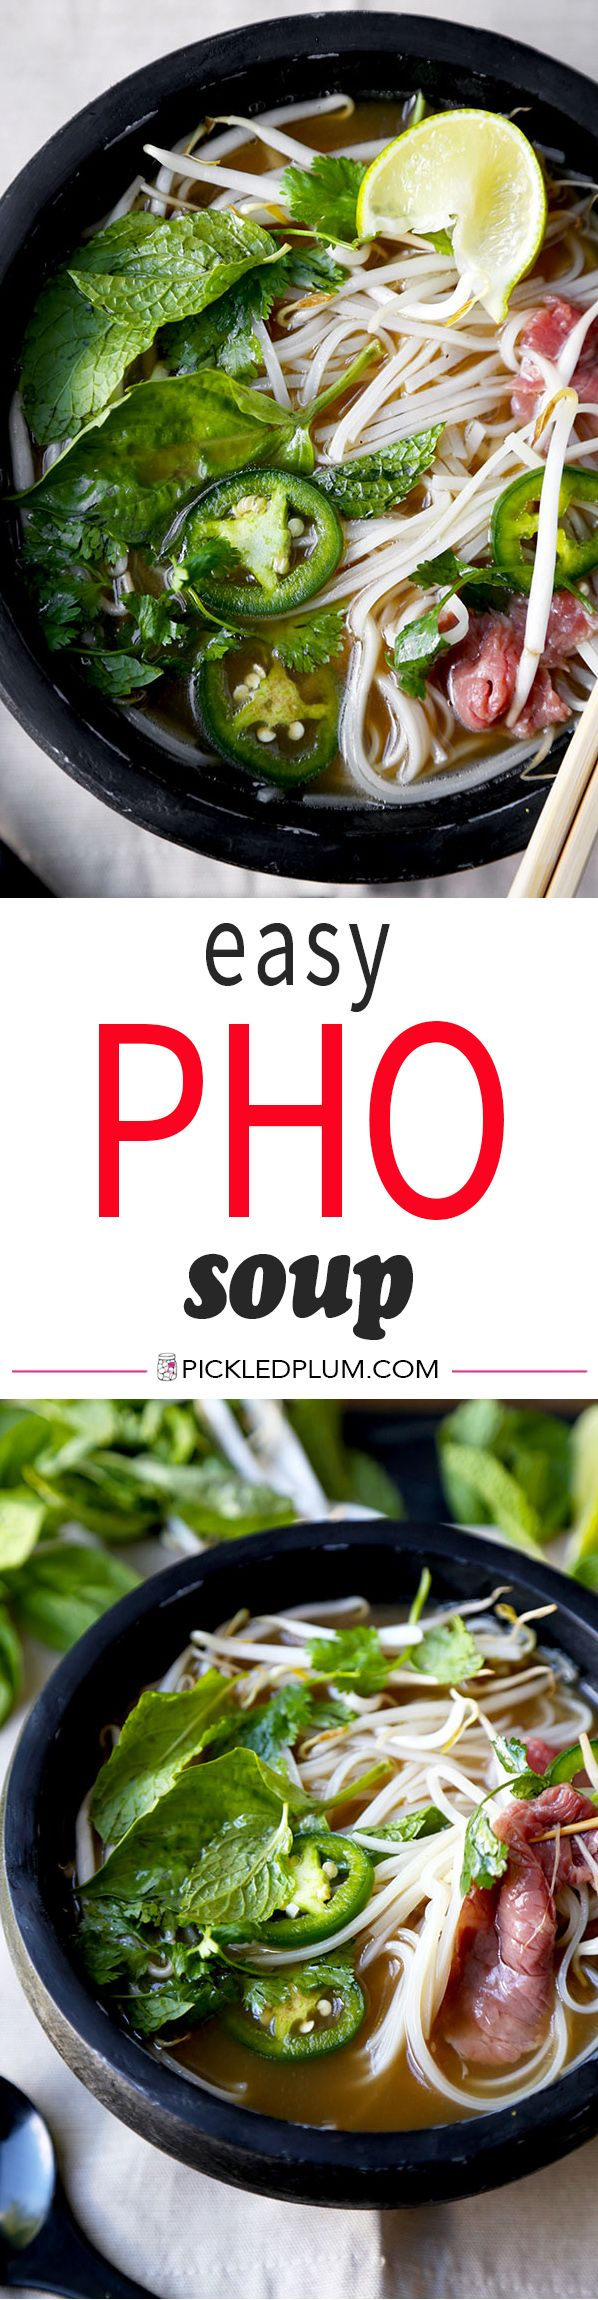 Easy Pho Soup Recipe - Slurp your noodles with abandon in 30 minutes with this Easy Pho Soup Recipe. Beef pho ready in just 30 minutes! #noodlesoup #pho #healthyrecipes #easydinner #homemade